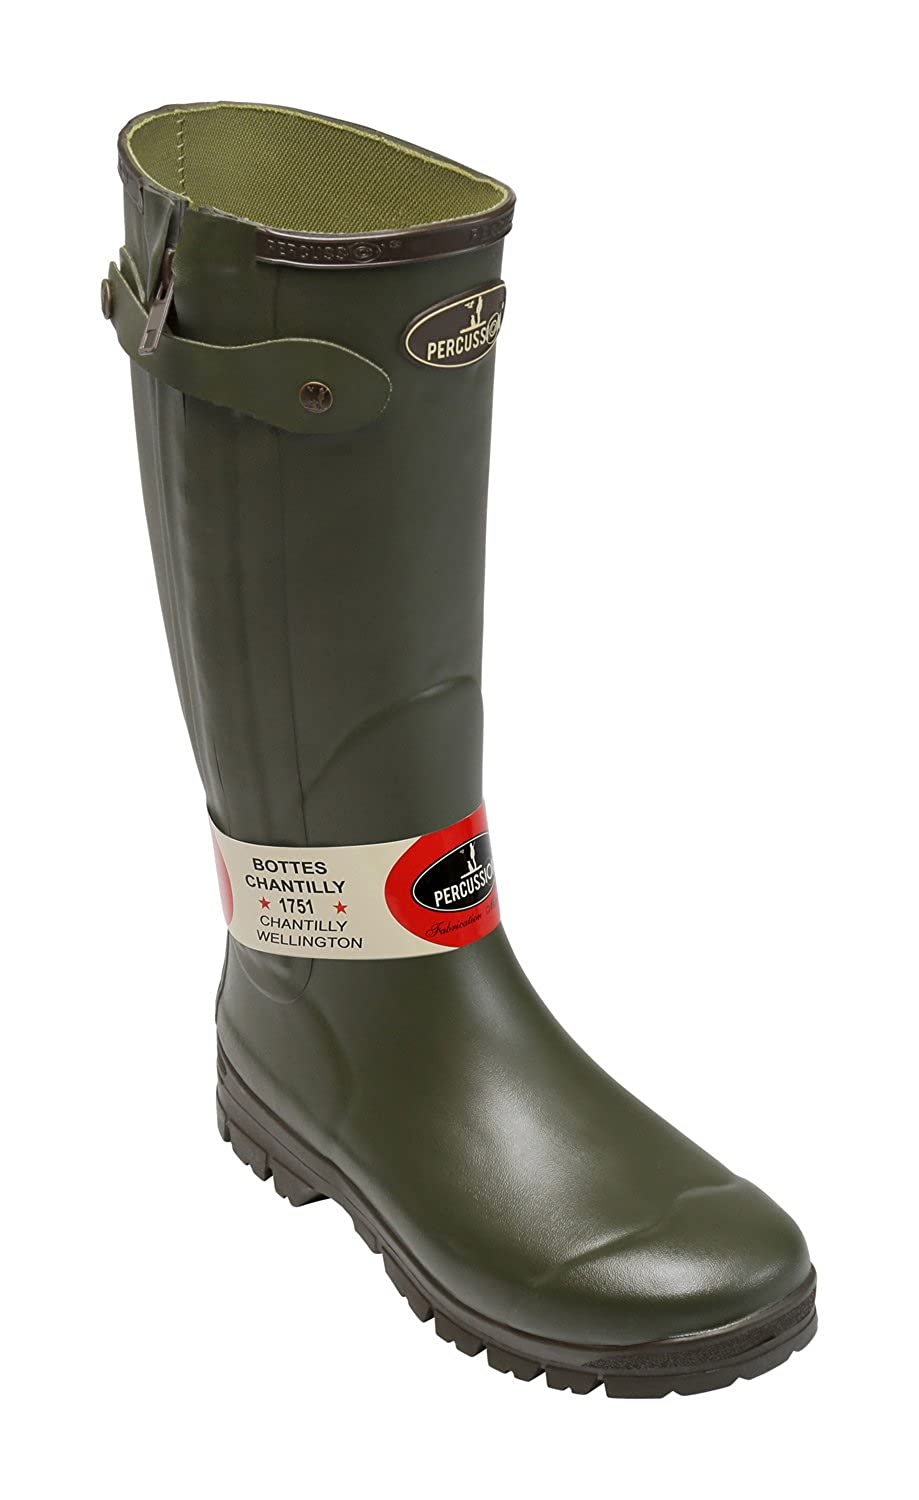 Full Bottes 8wfp7q8 Subvocalize De Zip Percussion Chantilly Chasse IqwE4n